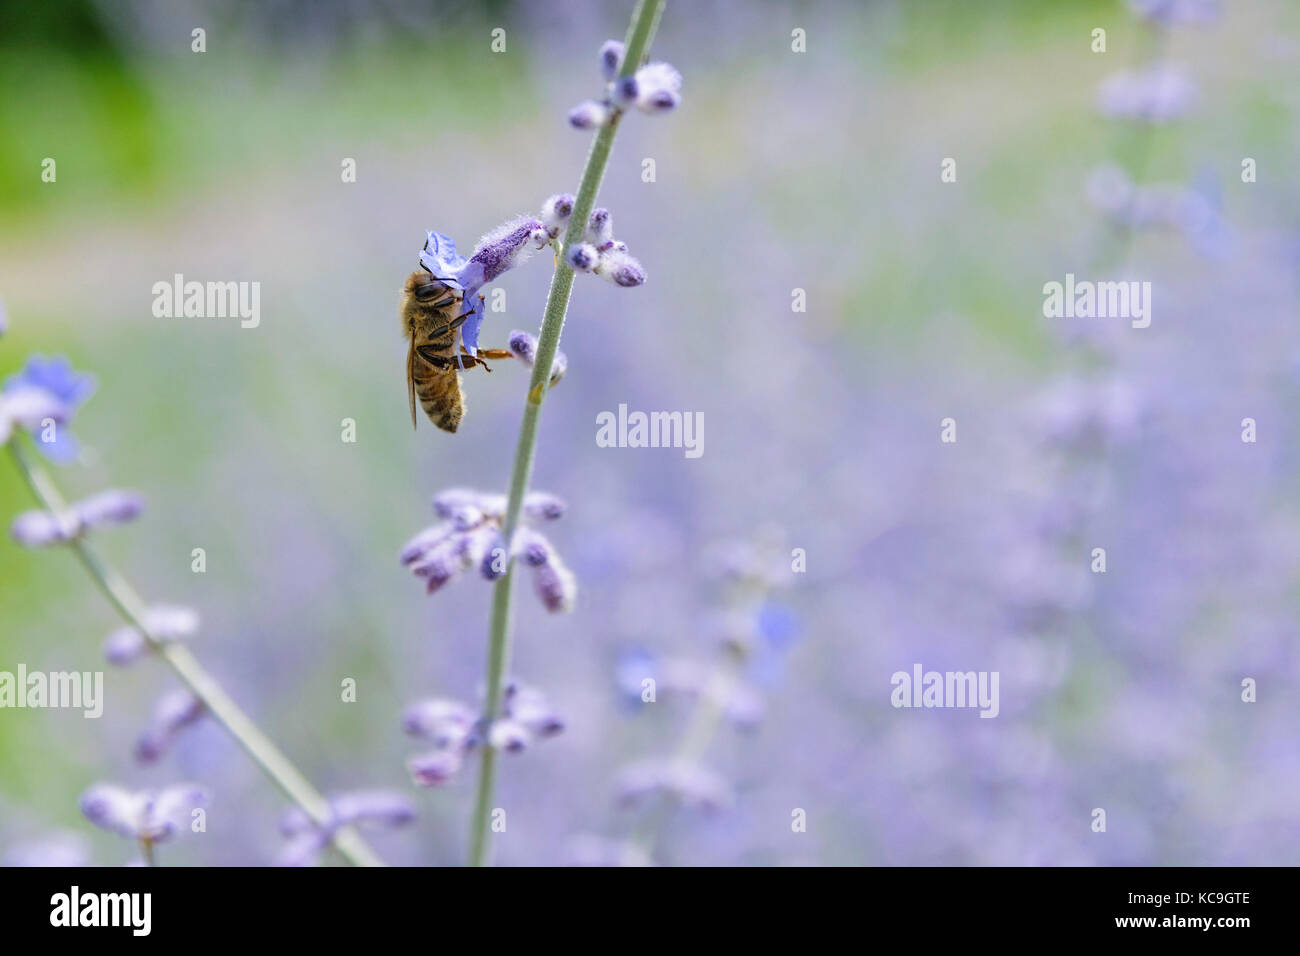 Side Angle Close-Up Of Bee Collecting Pollen From Russian Sage Flowers Or Perovskia Atriplicifolia - Stock Image